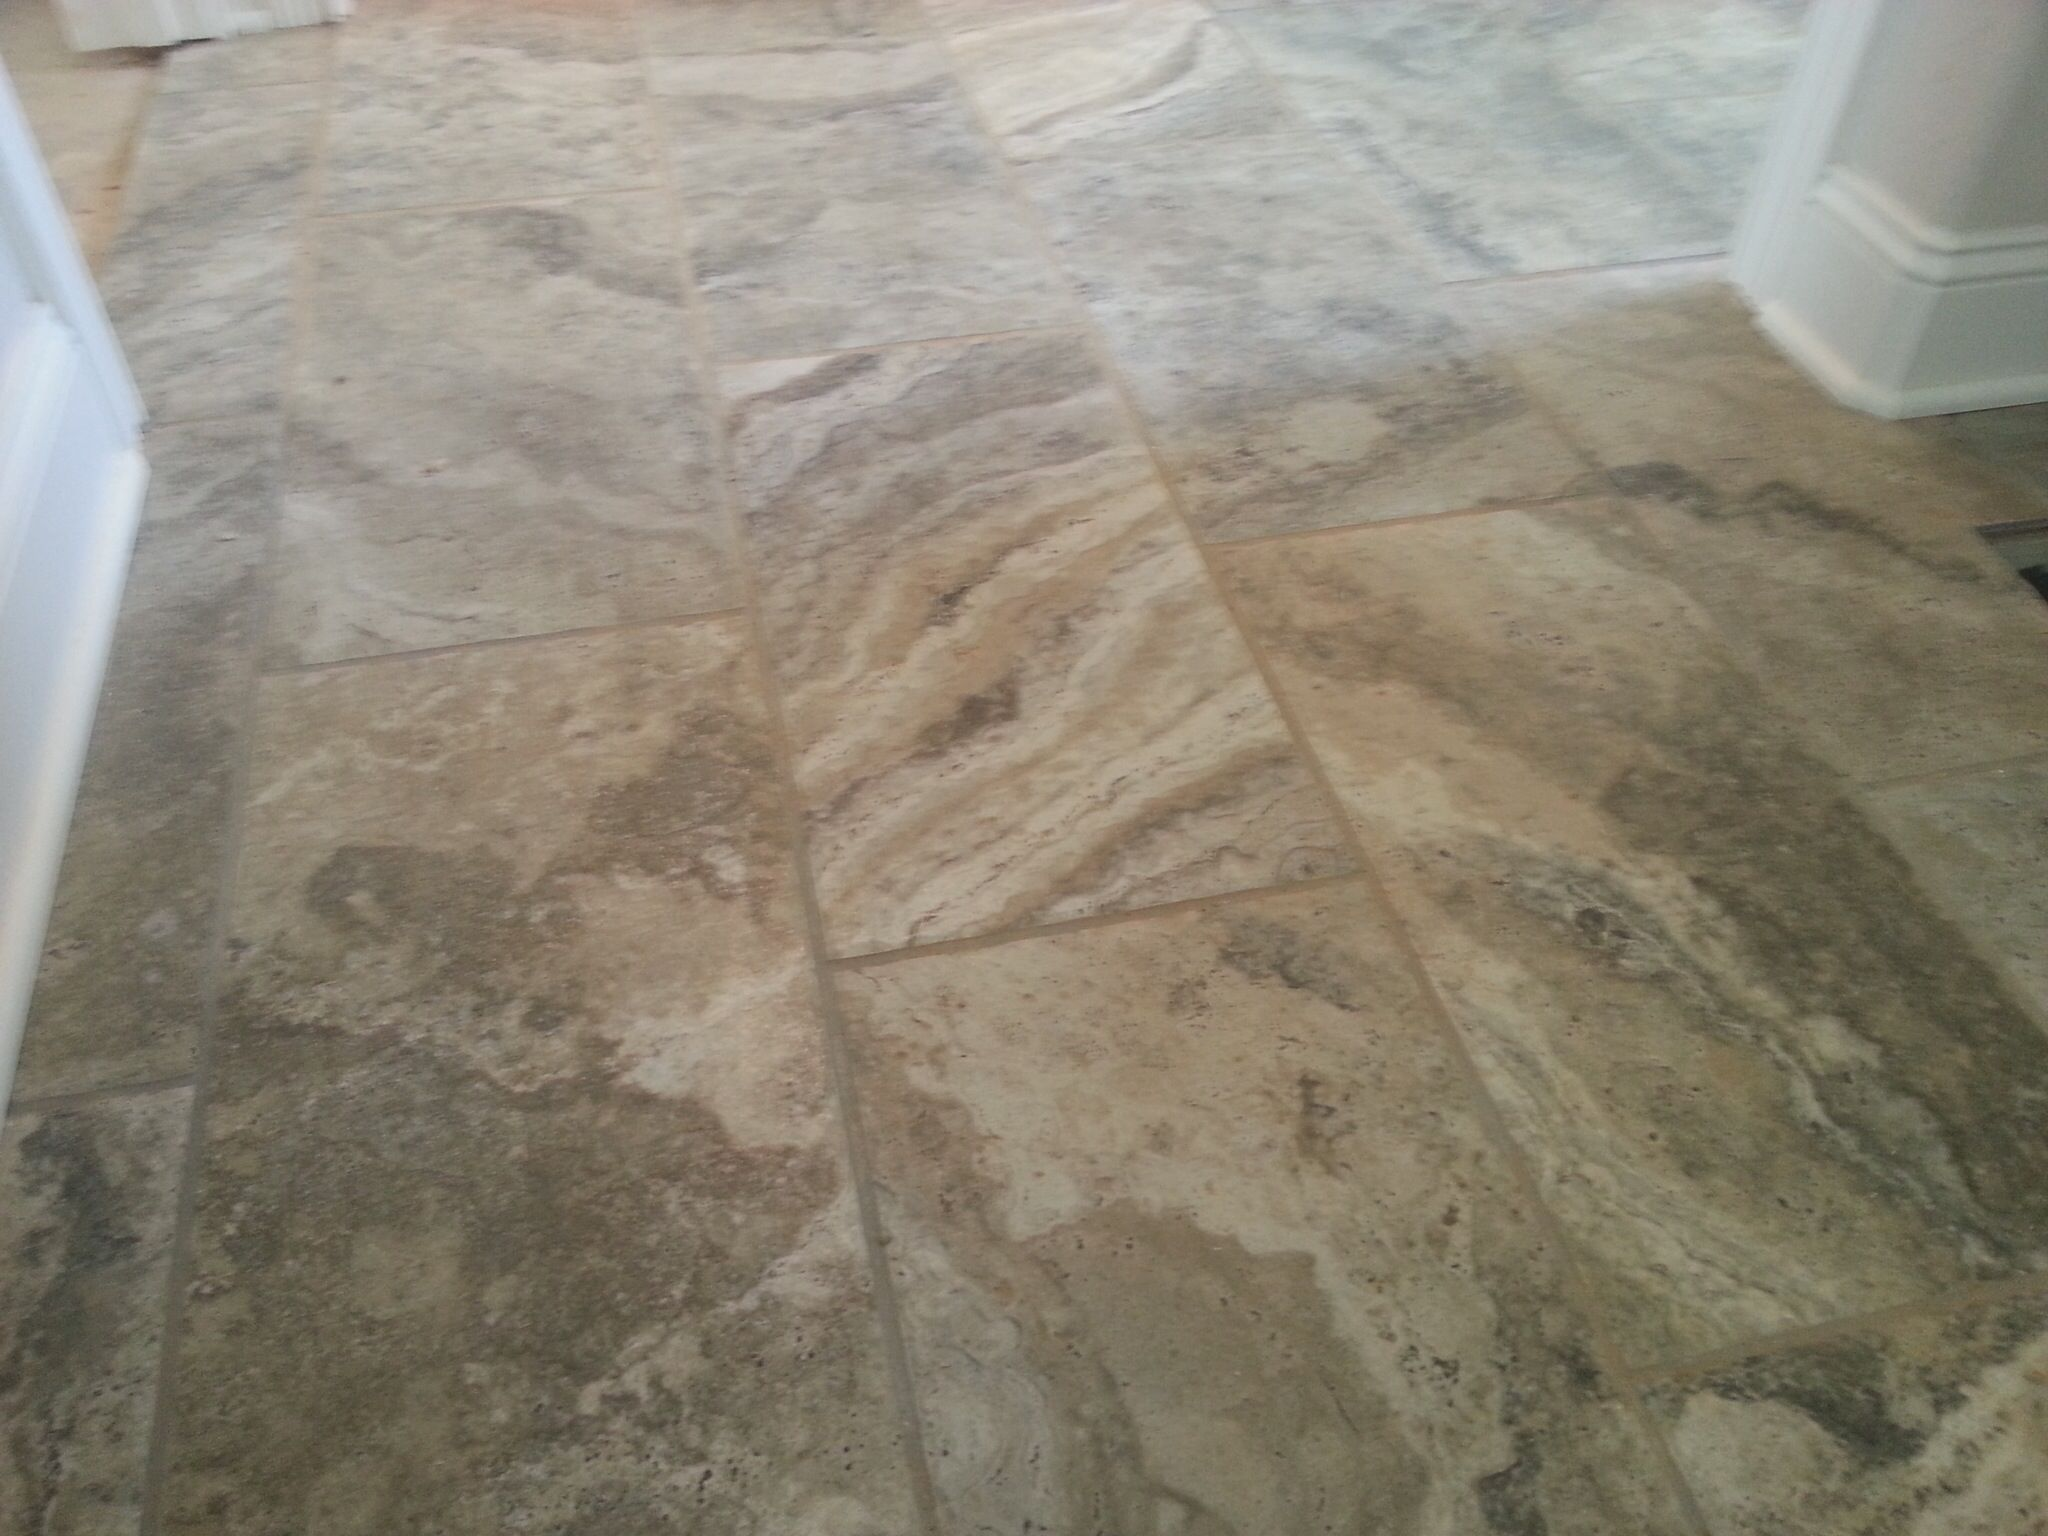 Another Great Pic Of Crystal River Tile This Chiseled Edge Tile Series Is Called Archaeology By Marazzi And We Have A Tile Work Crystal River Hardwood Floors